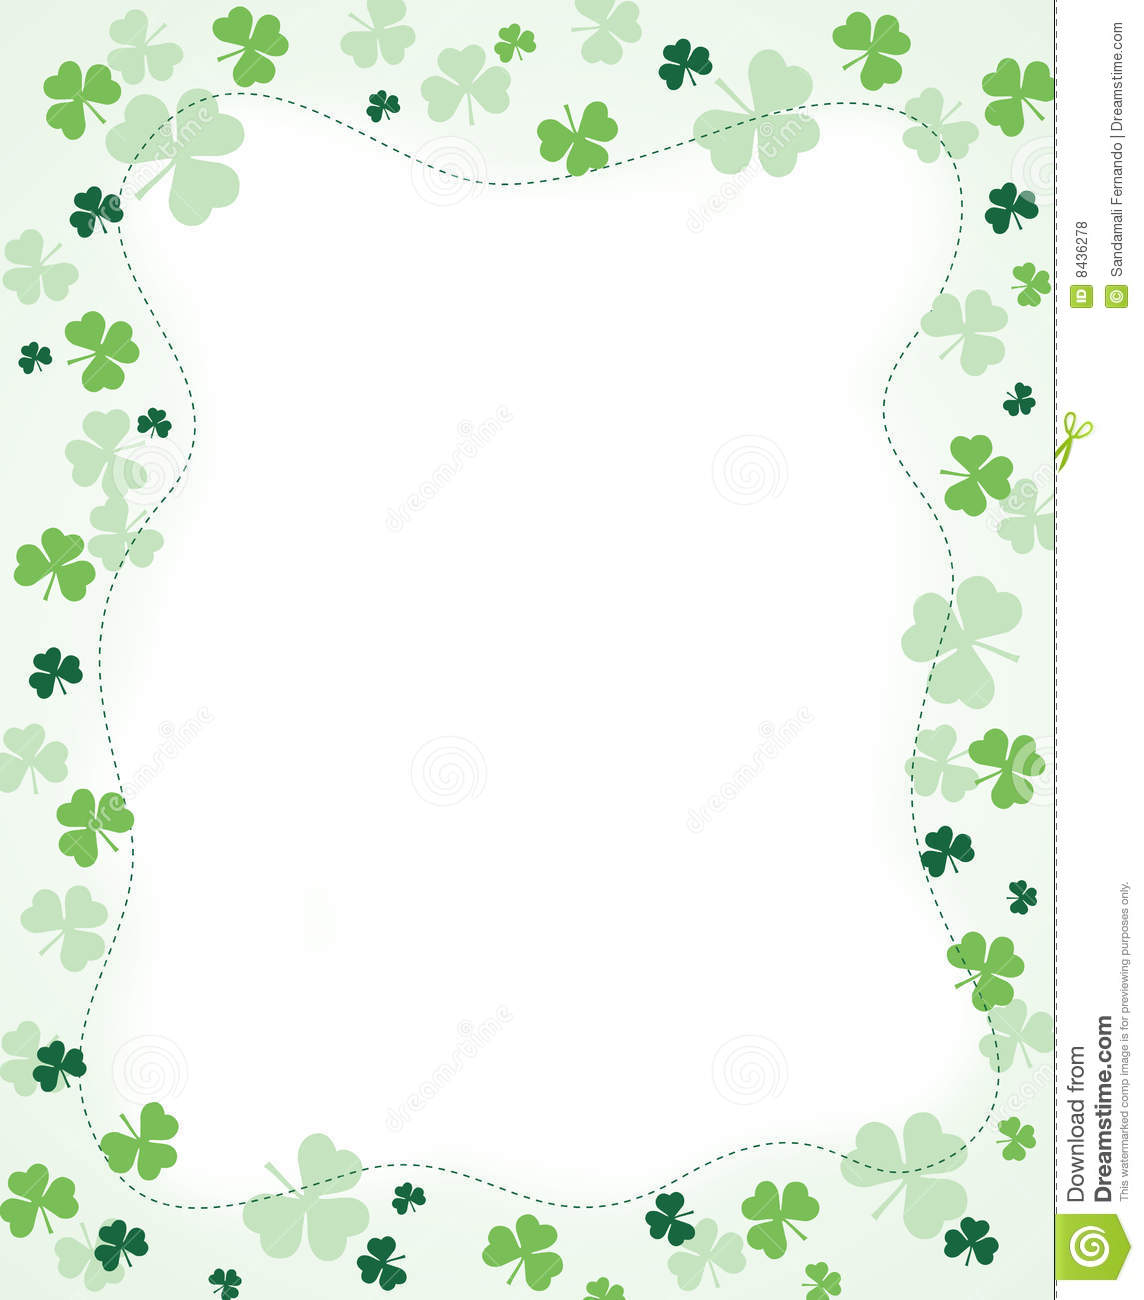 Border of Shamrocks Clip Art